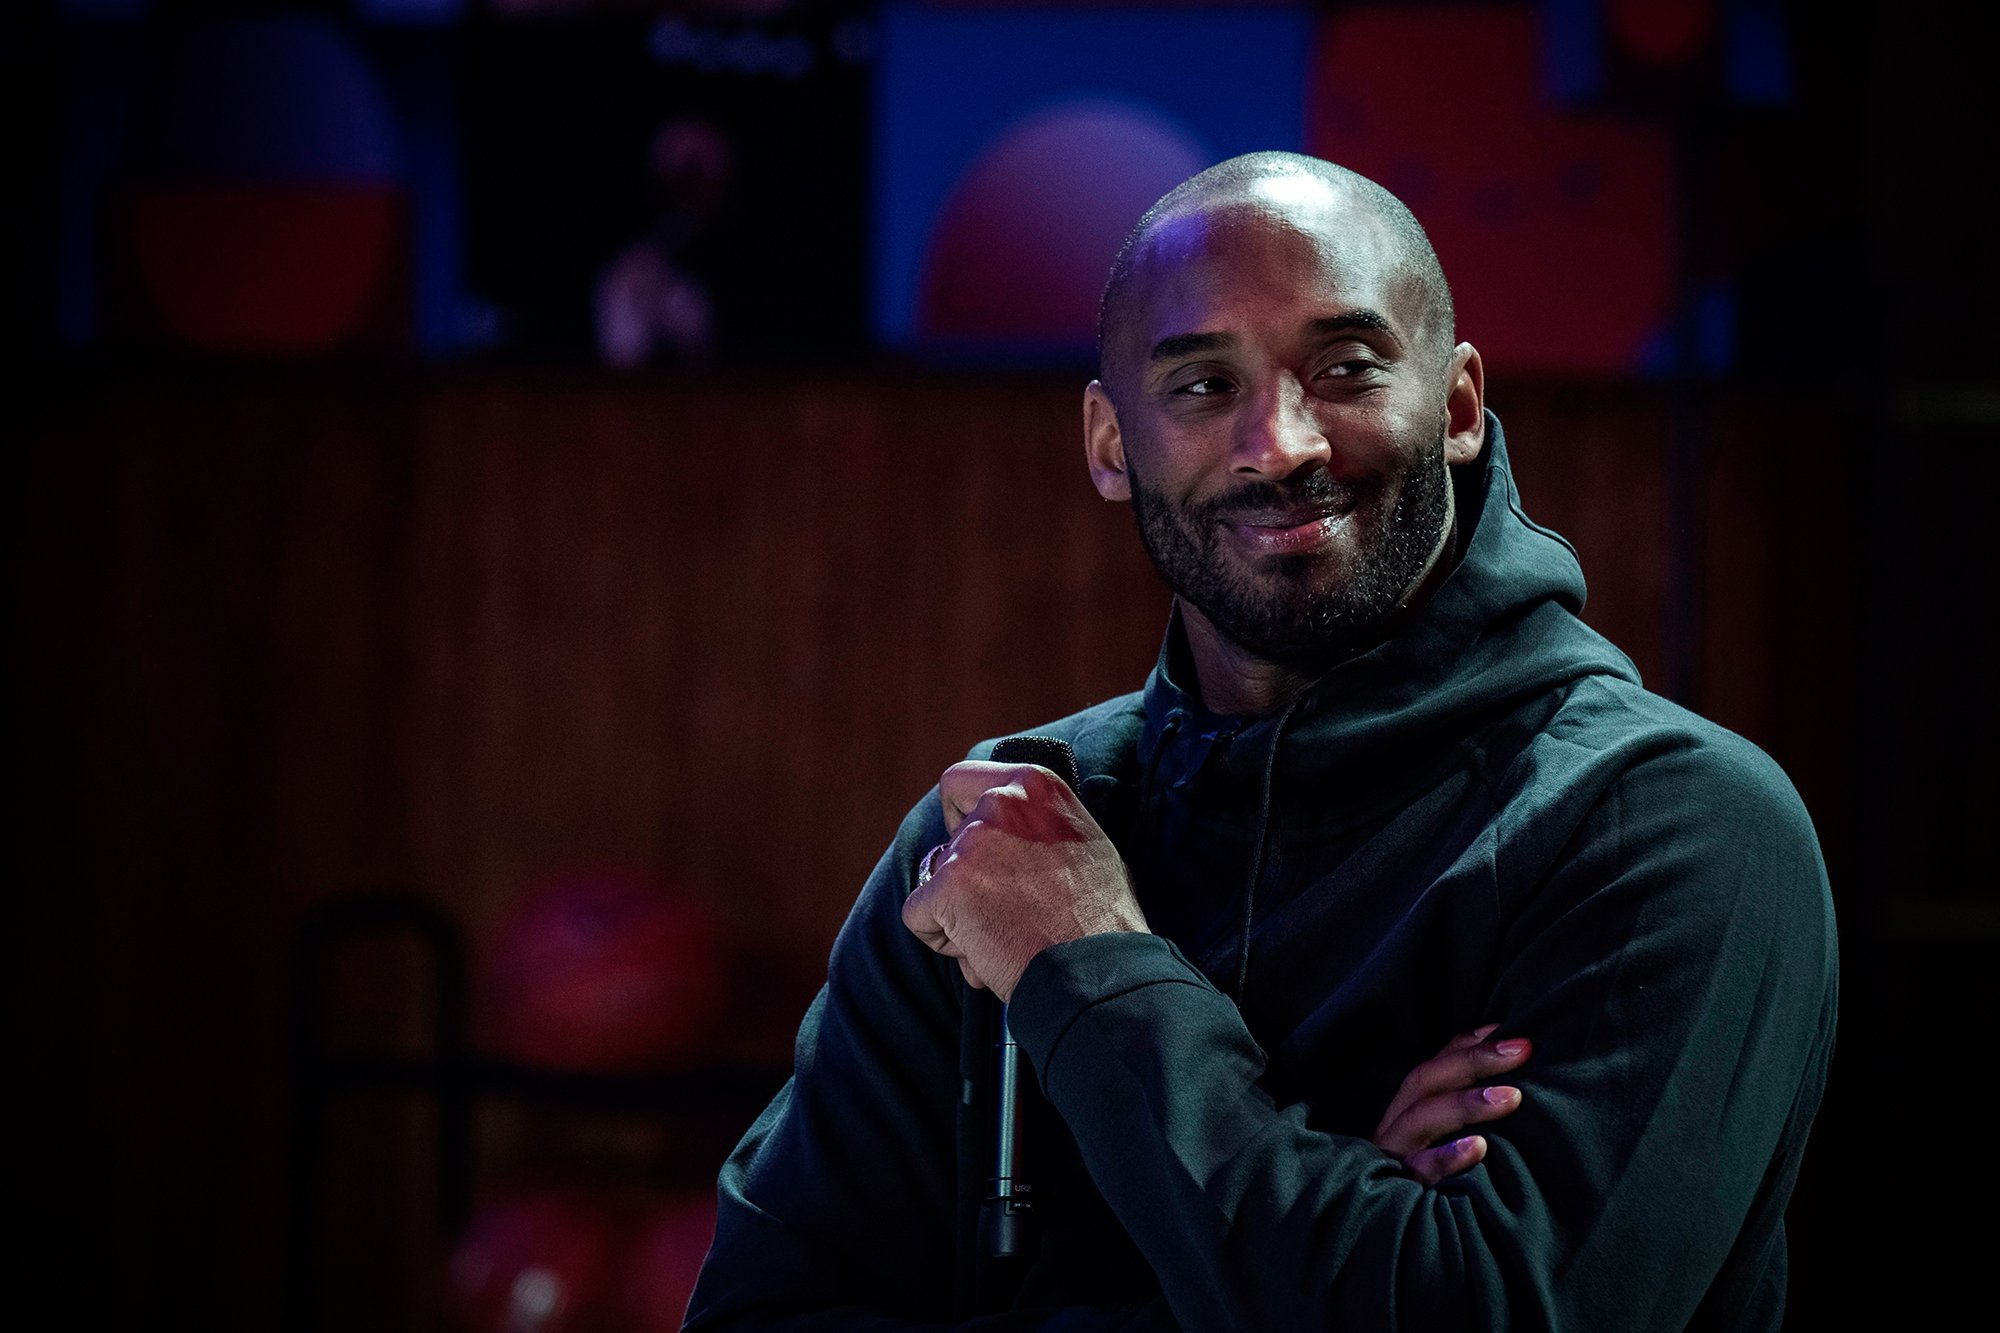 Kobe Bryant (PHILIPPE LOPEZ/AFP via Getty Images)